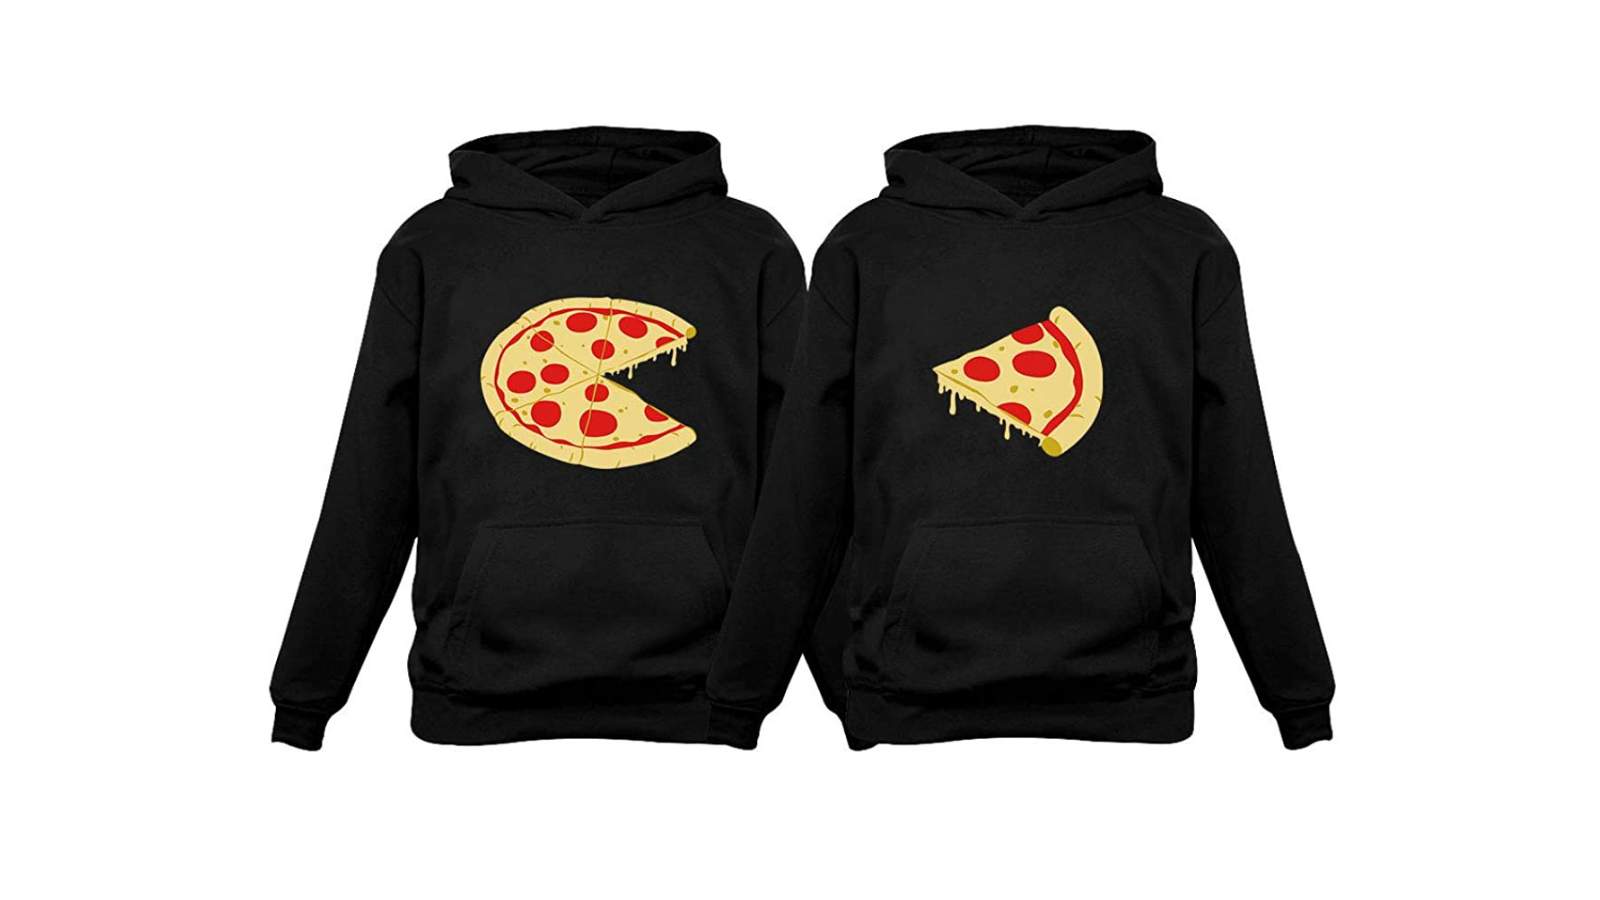 Matching black hoodies with pizza.